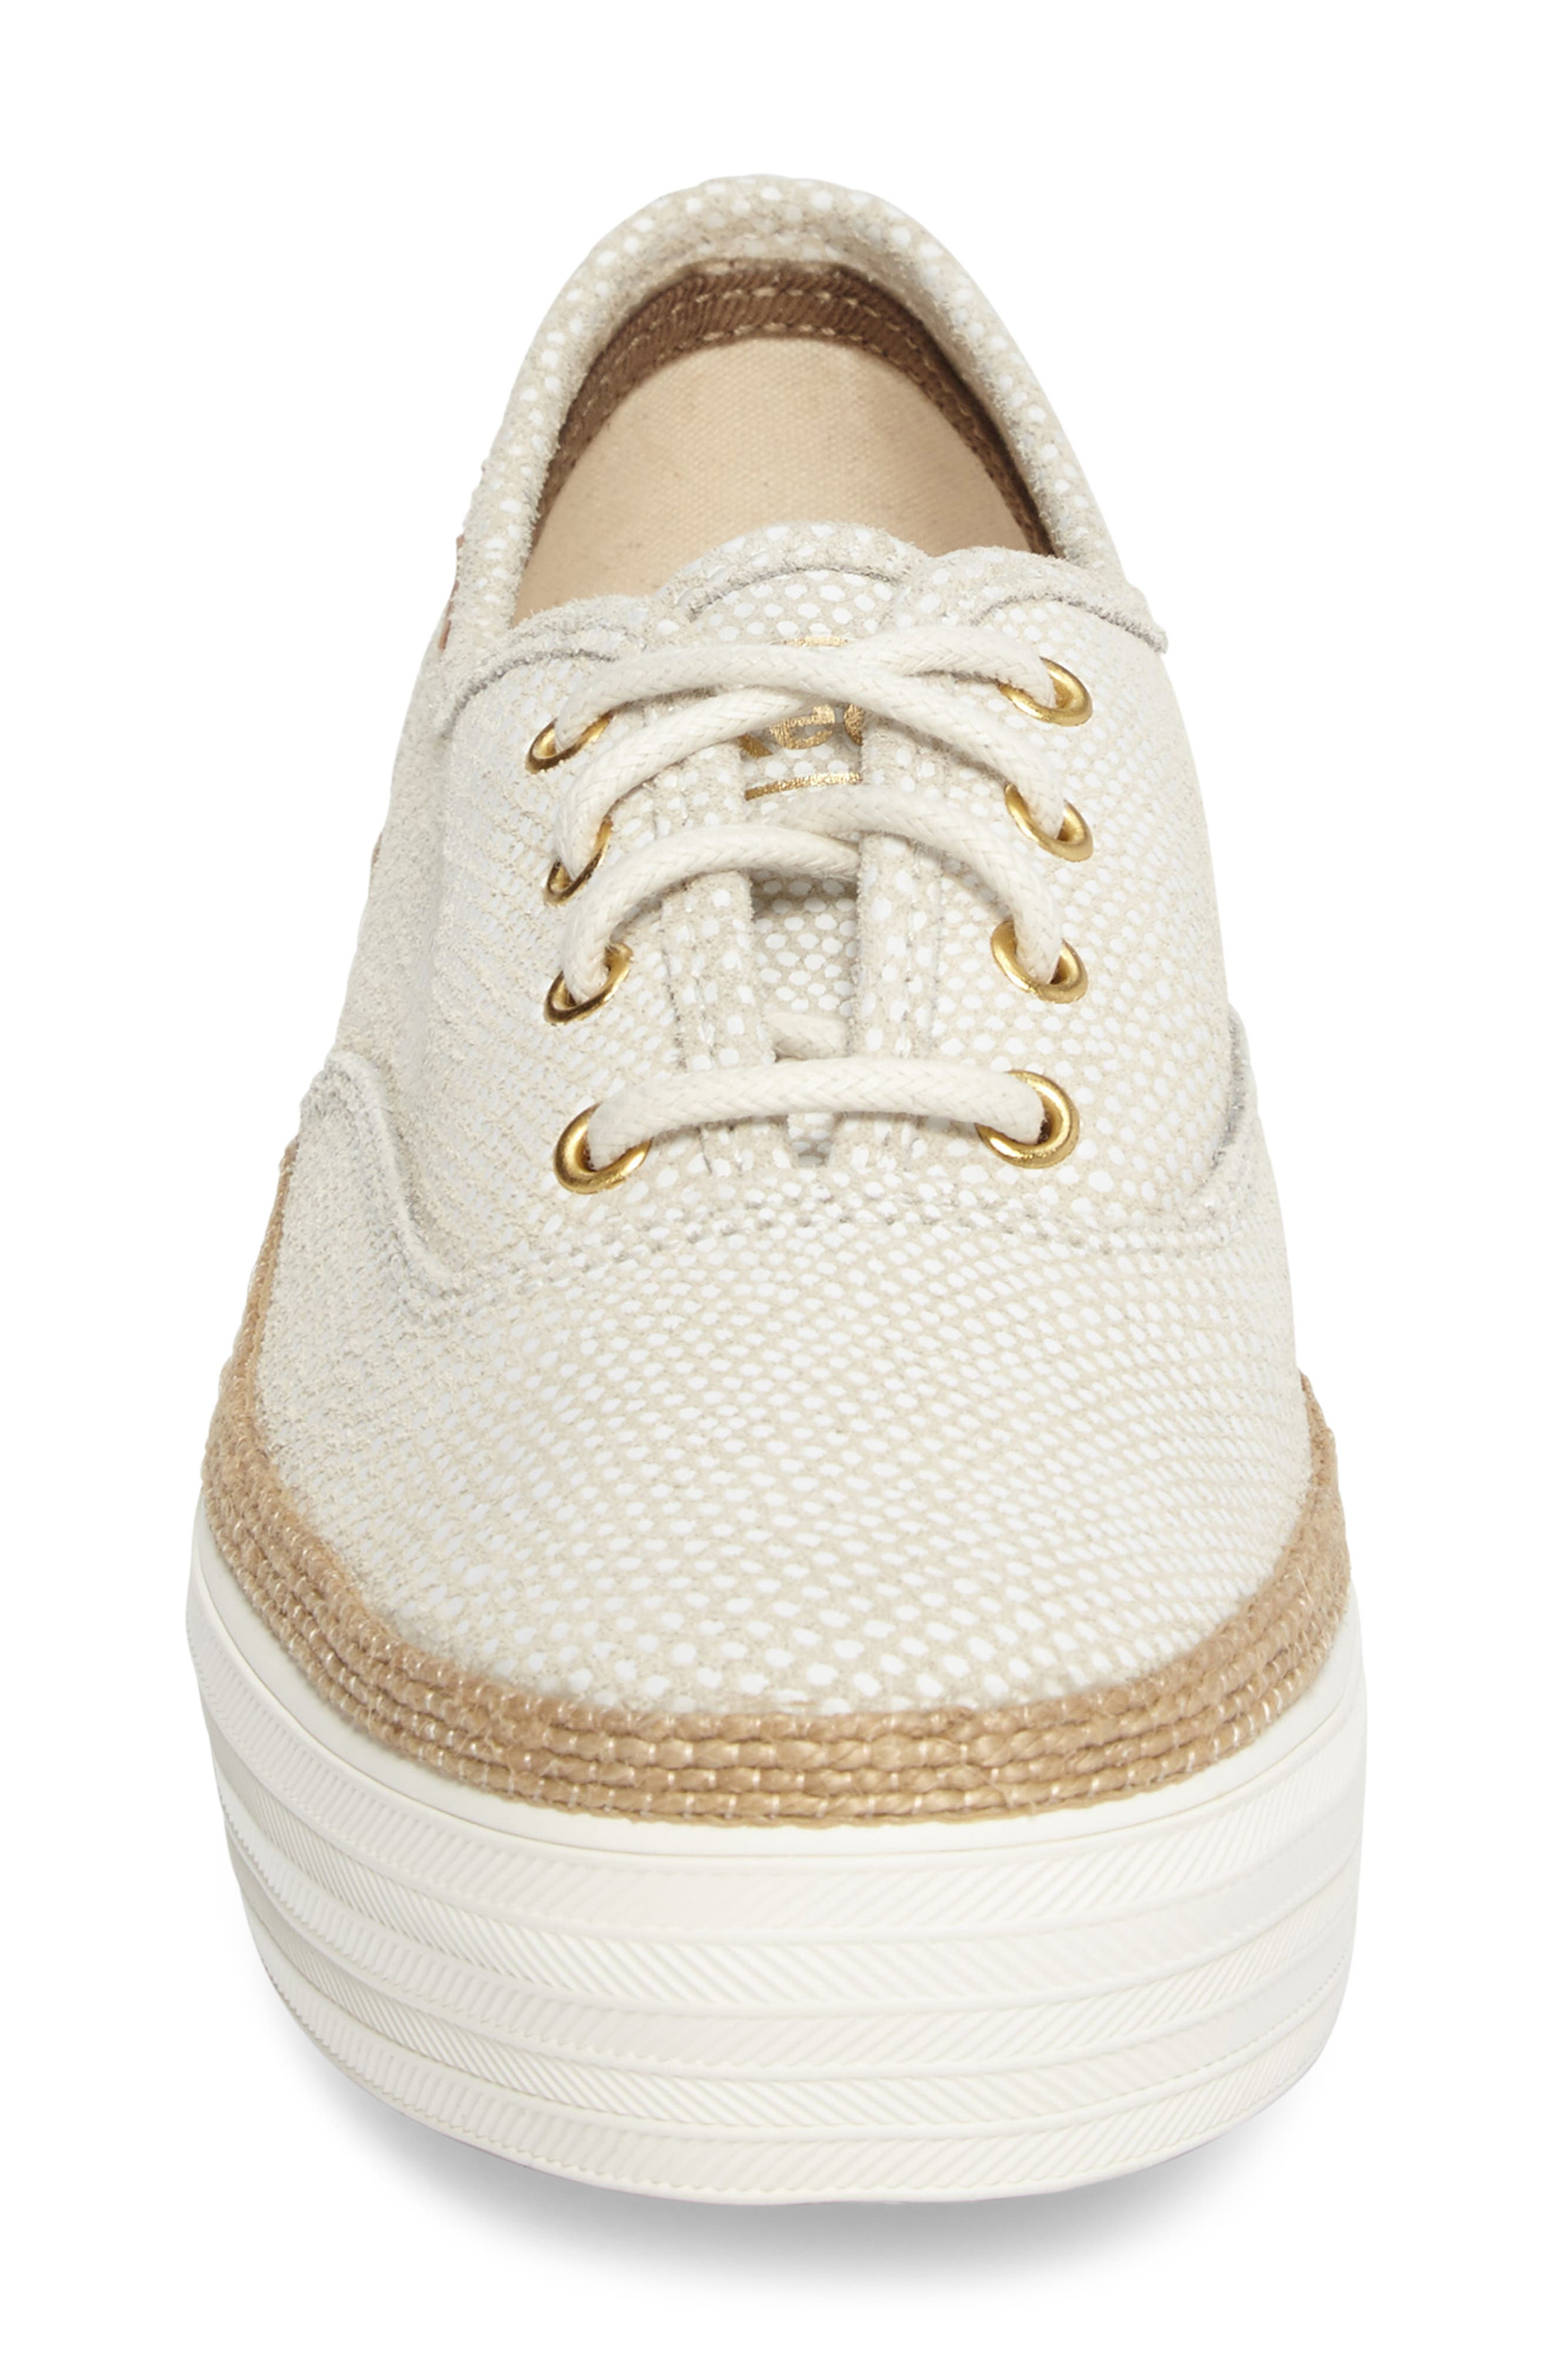 Triple Deck Platform Sneaker,                             Alternate thumbnail 4, color,                             Cream